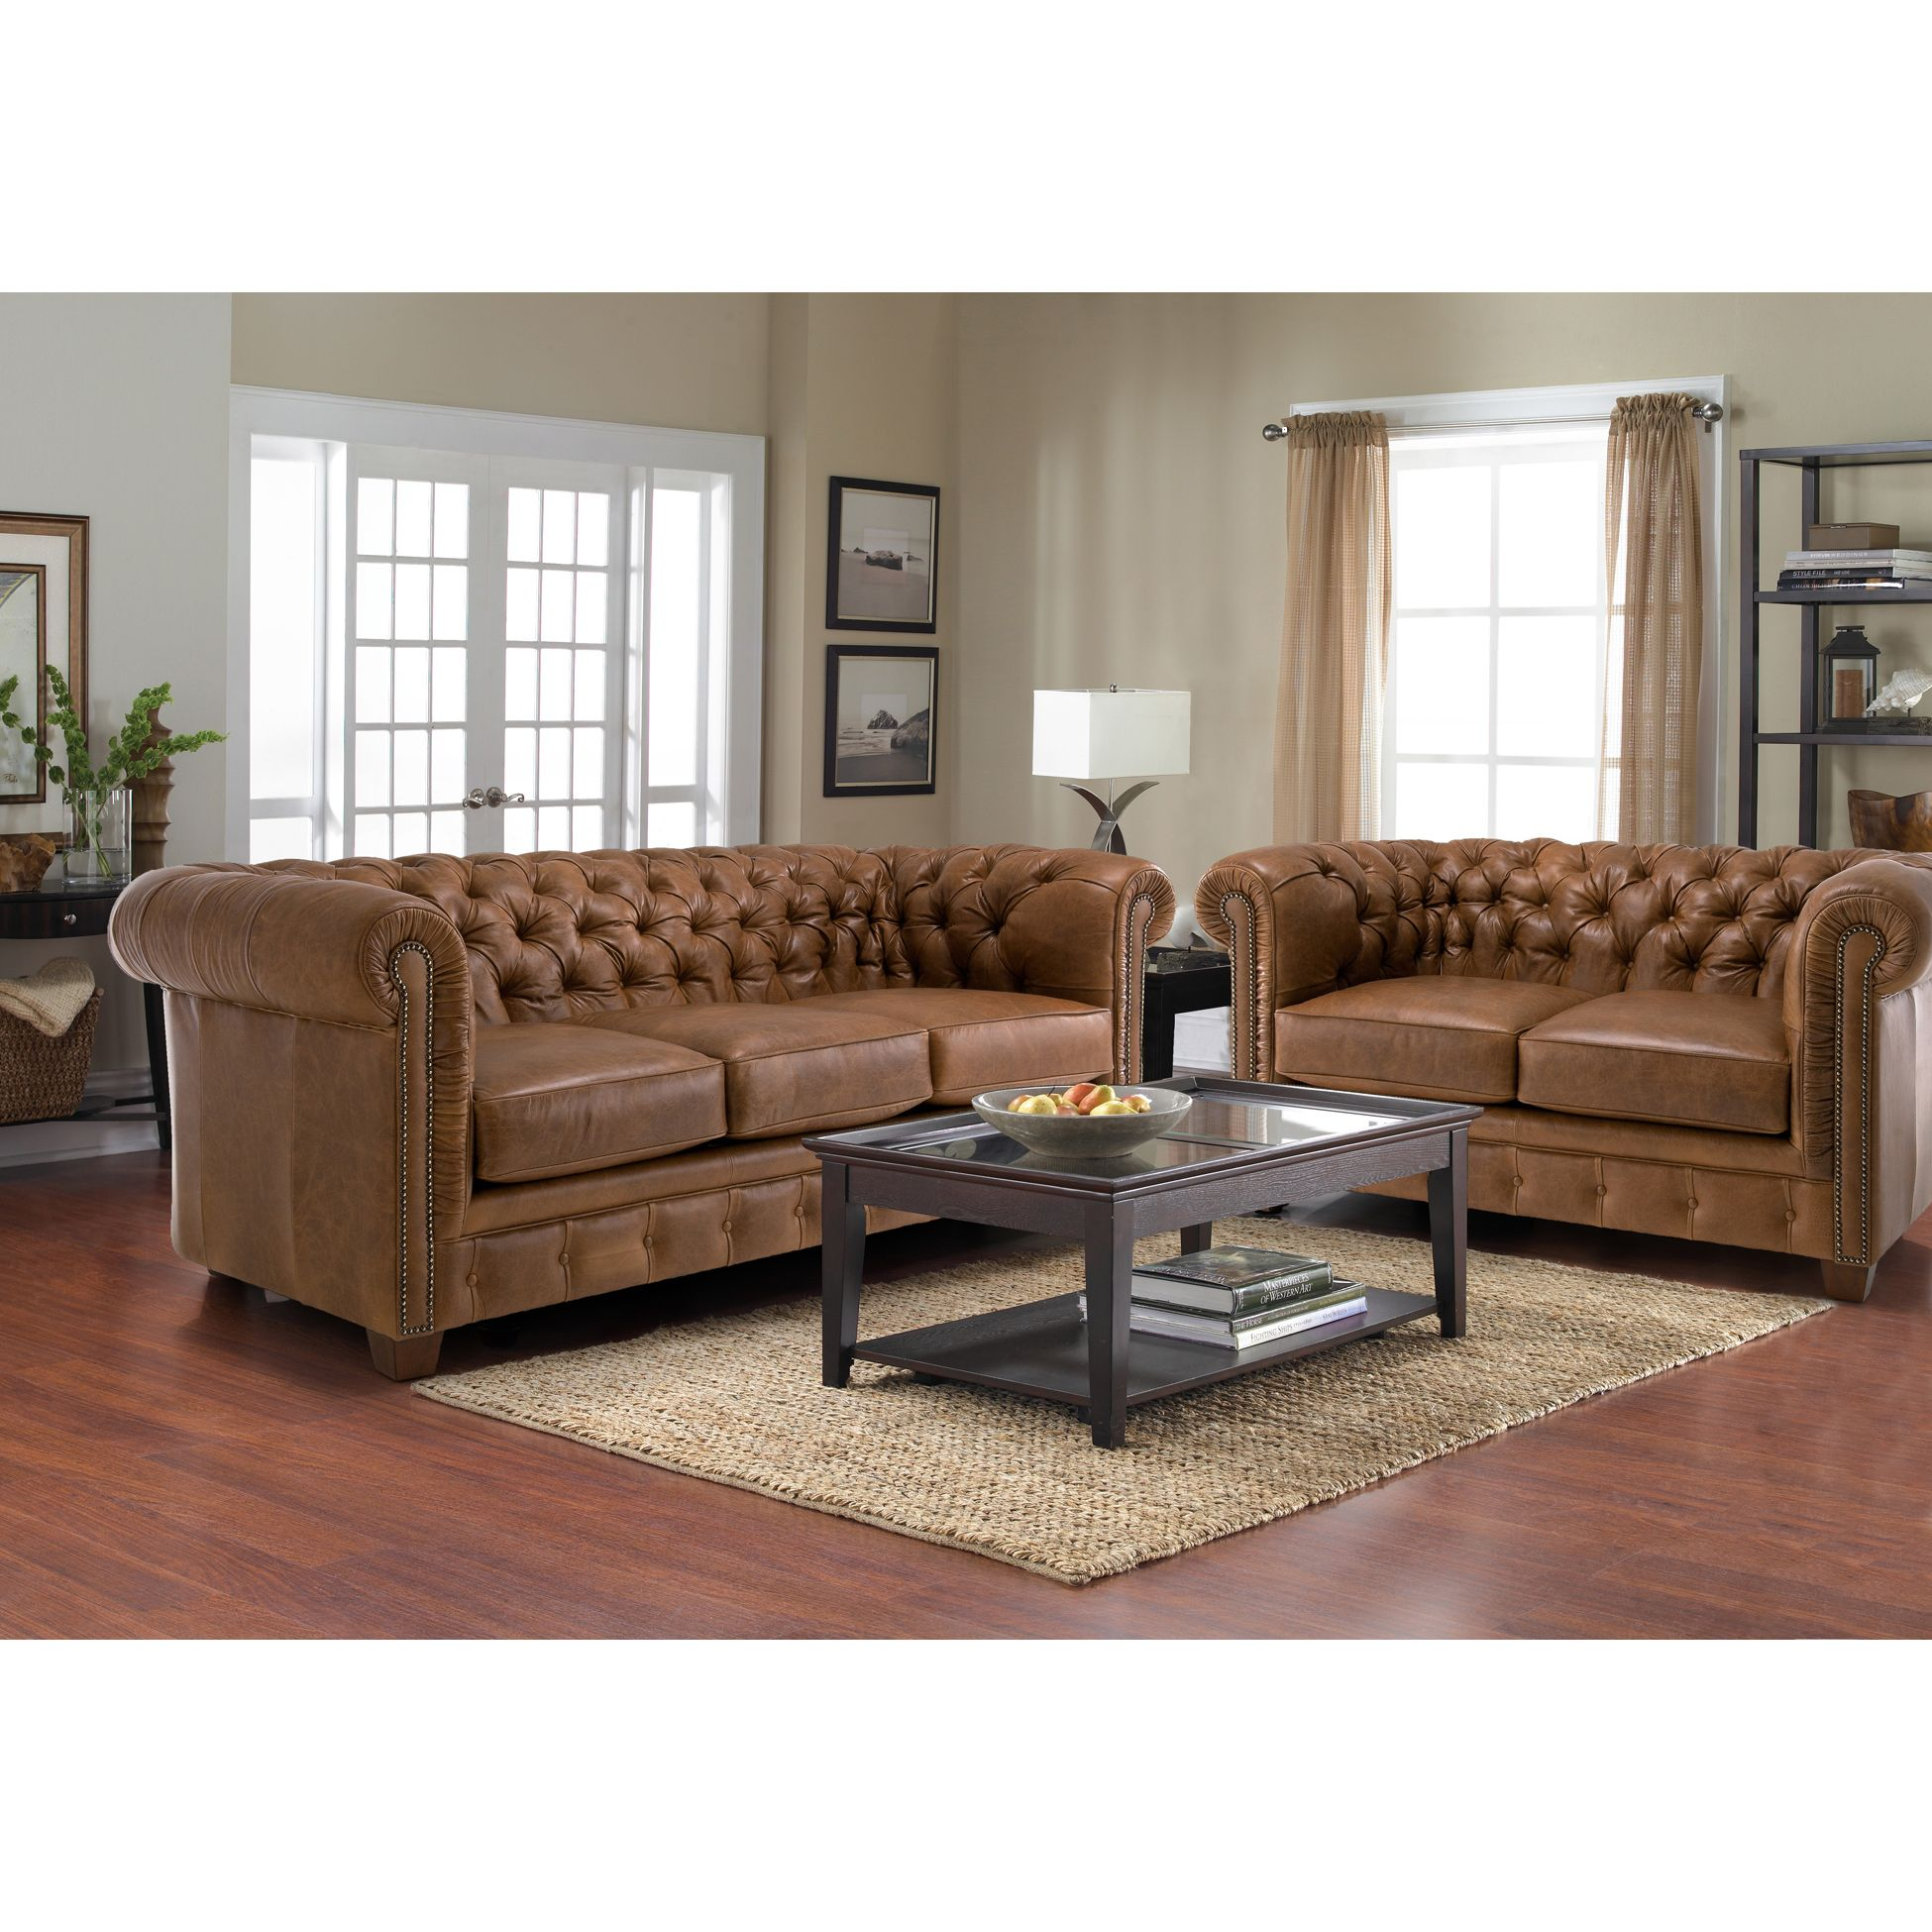 Overstock Com Online Shopping Bedding Furniture Electronics Jewelry Clothing More In 2020 Living Room Sofa Set Italian Leather Sofa Leather Sofa And Loveseat